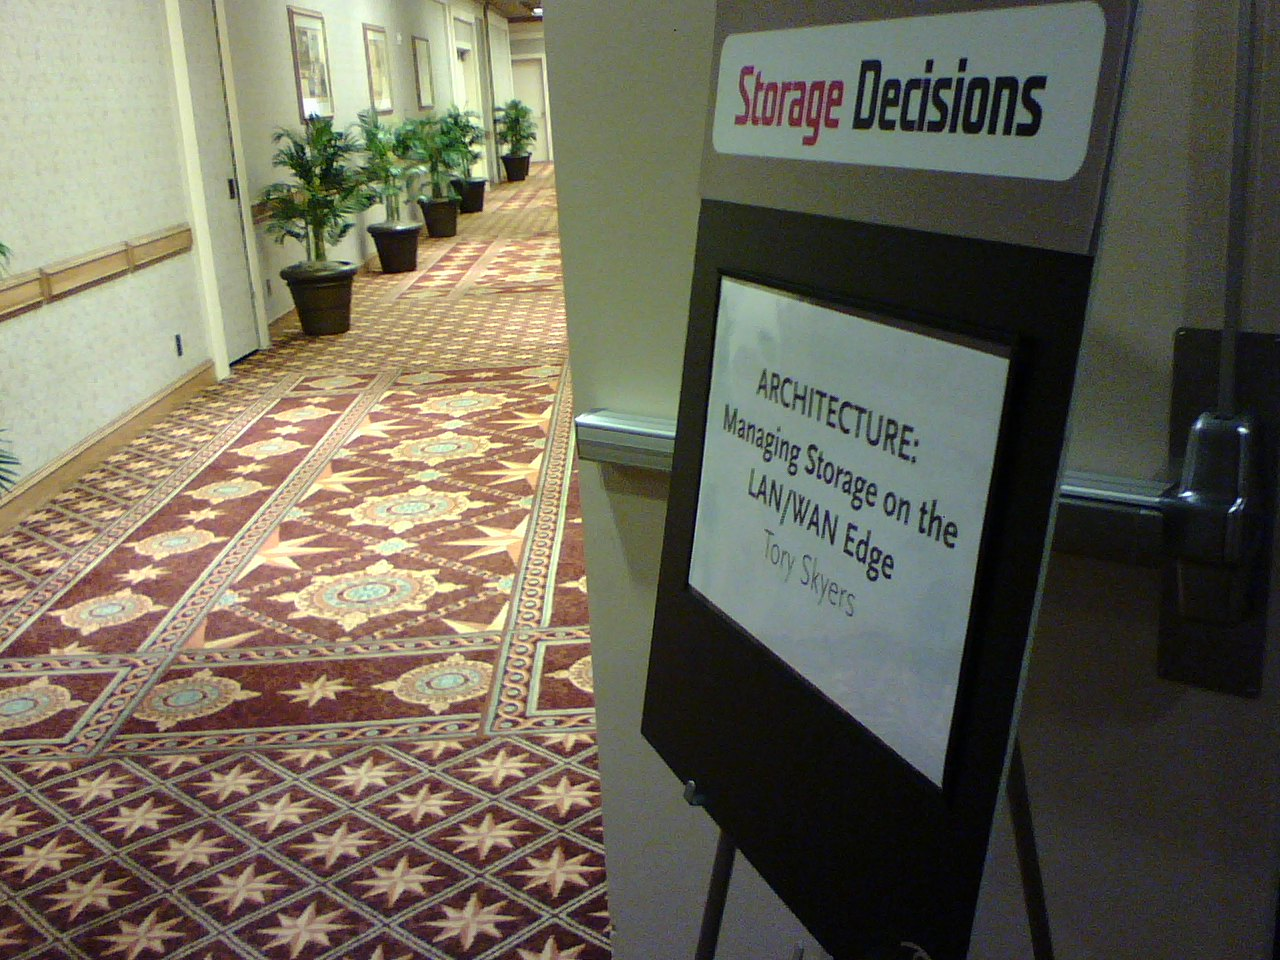 Storage Decisions breakout session area